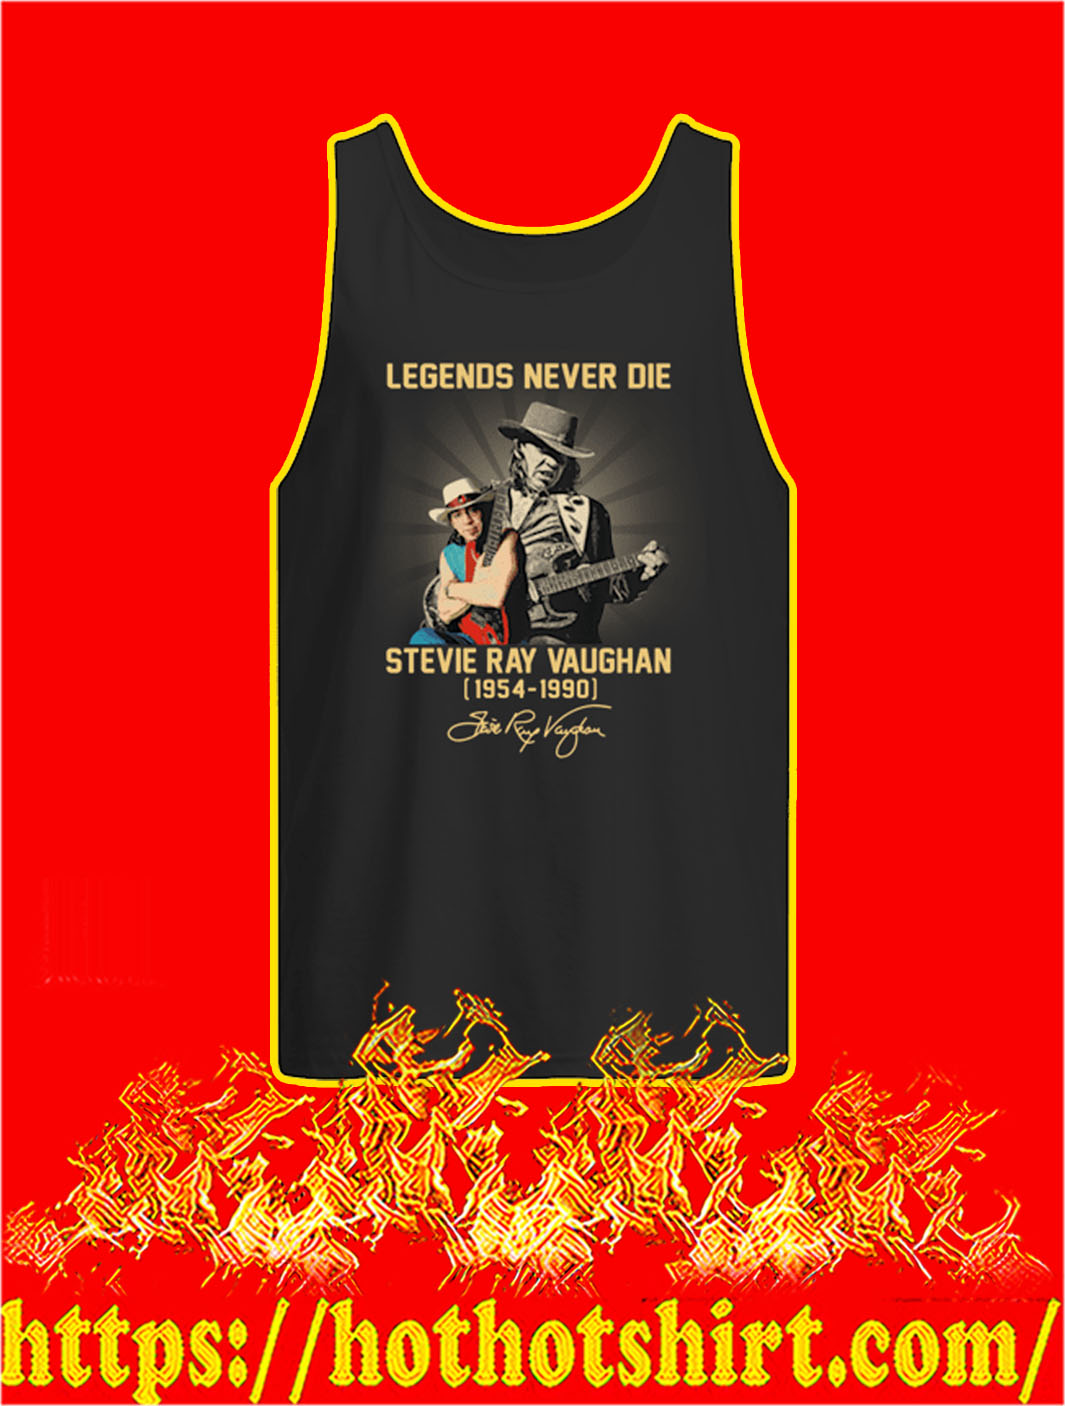 Legends Never Die Stevie Ray Vaughan 1954 1990 tank top